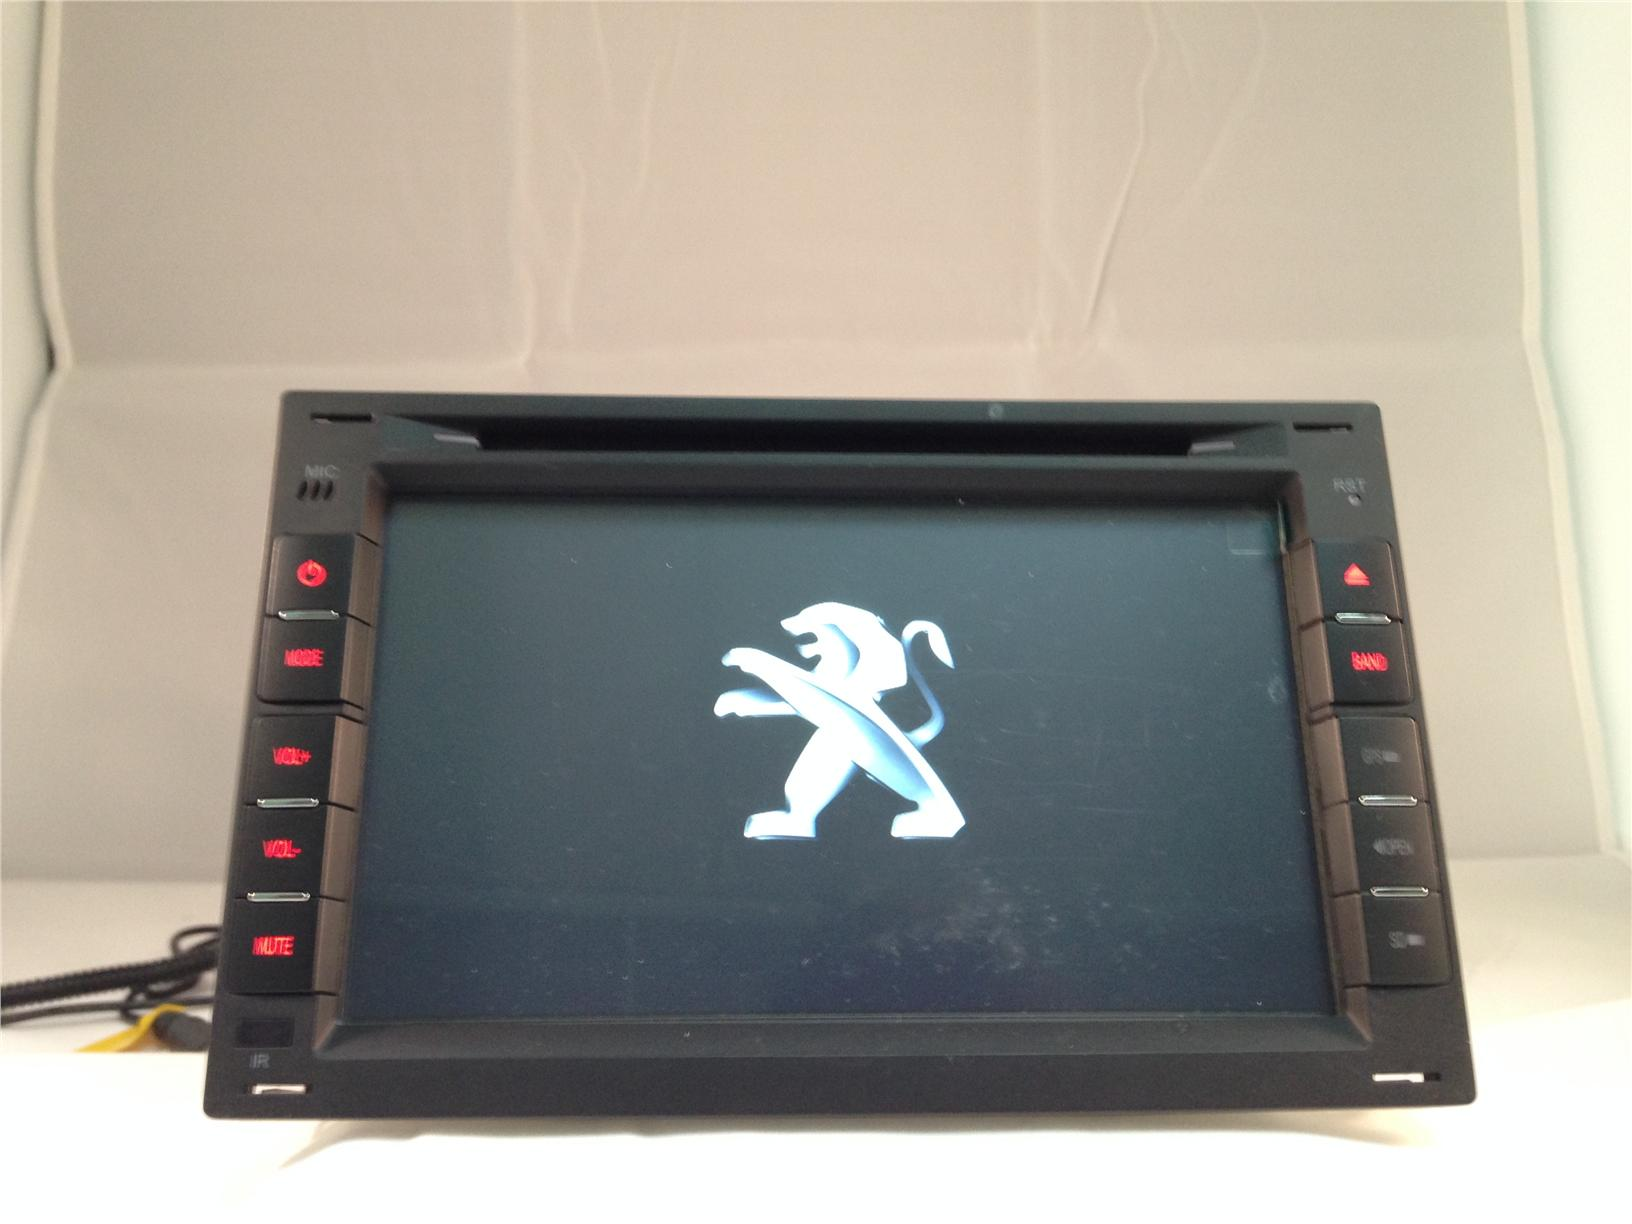 peugeot 3008 oem player gps only fo end 9 13 2015 4 15 pm. Black Bedroom Furniture Sets. Home Design Ideas